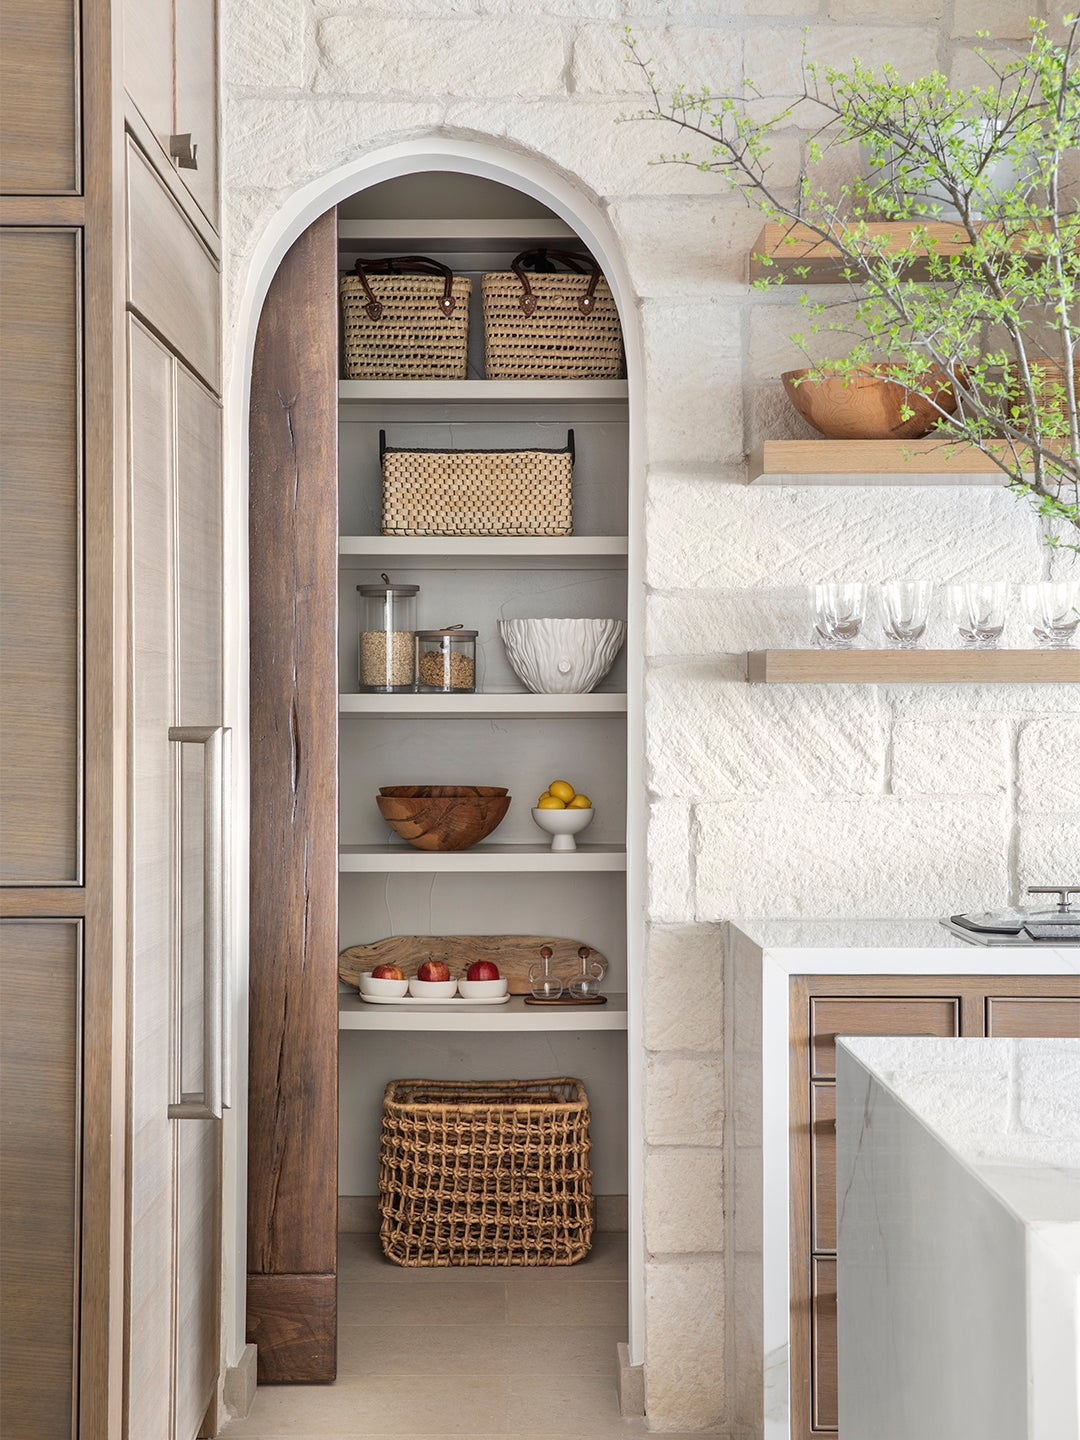 00-FEATURE-deep-pantry-shelves-domino